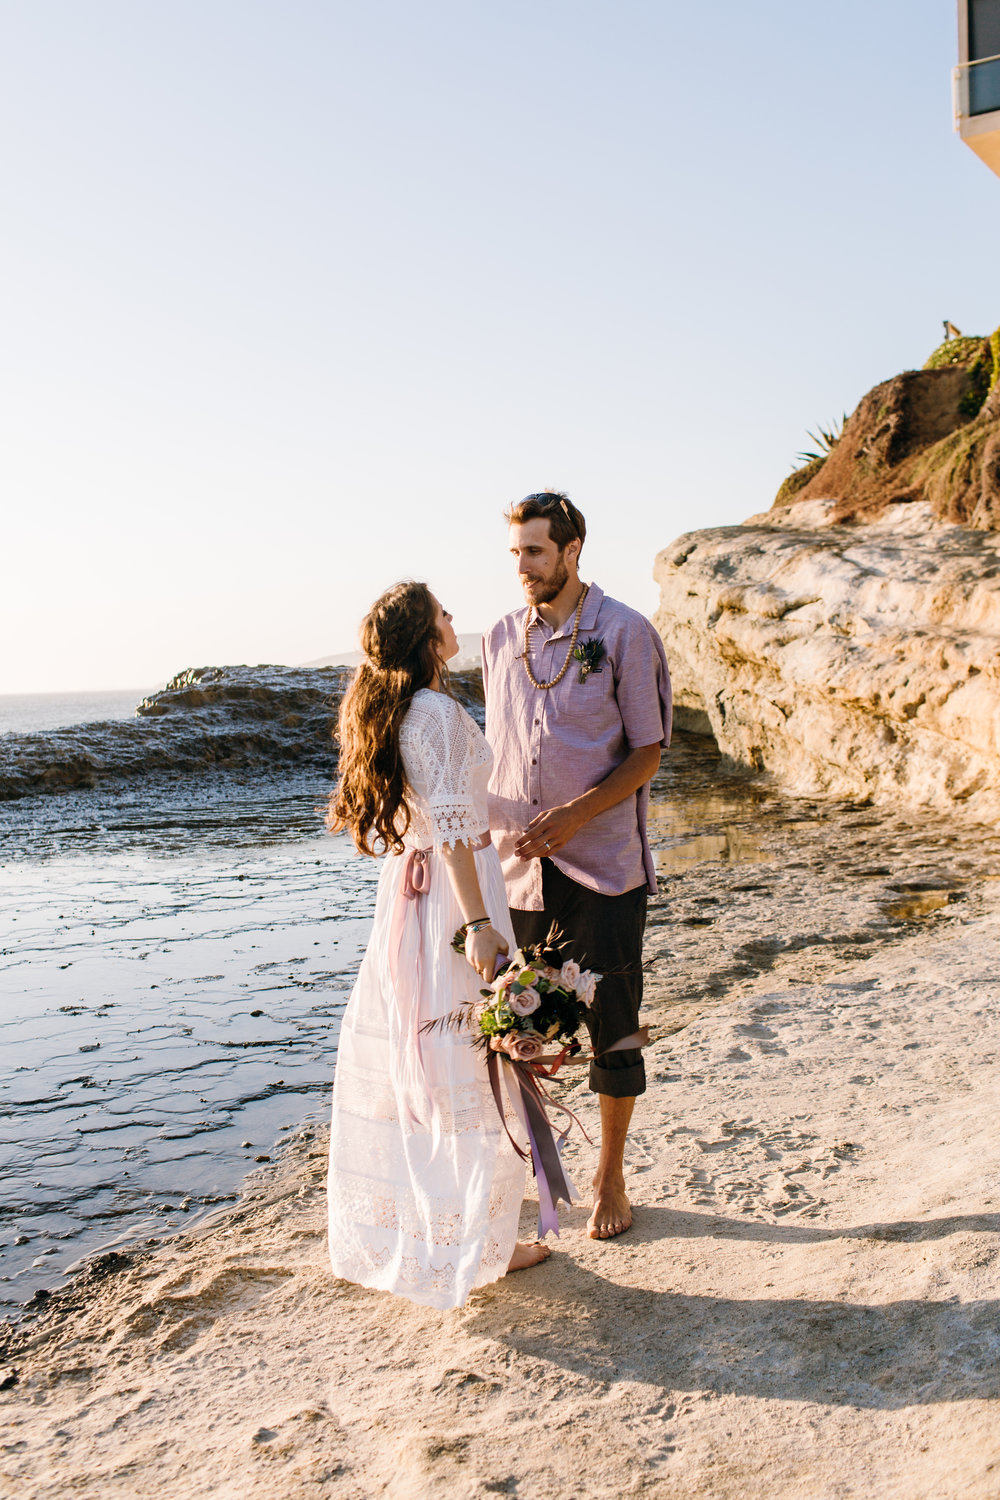 KaraNixonWeddings-LagunaBeach-Tablerock-Elopement-62.jpg